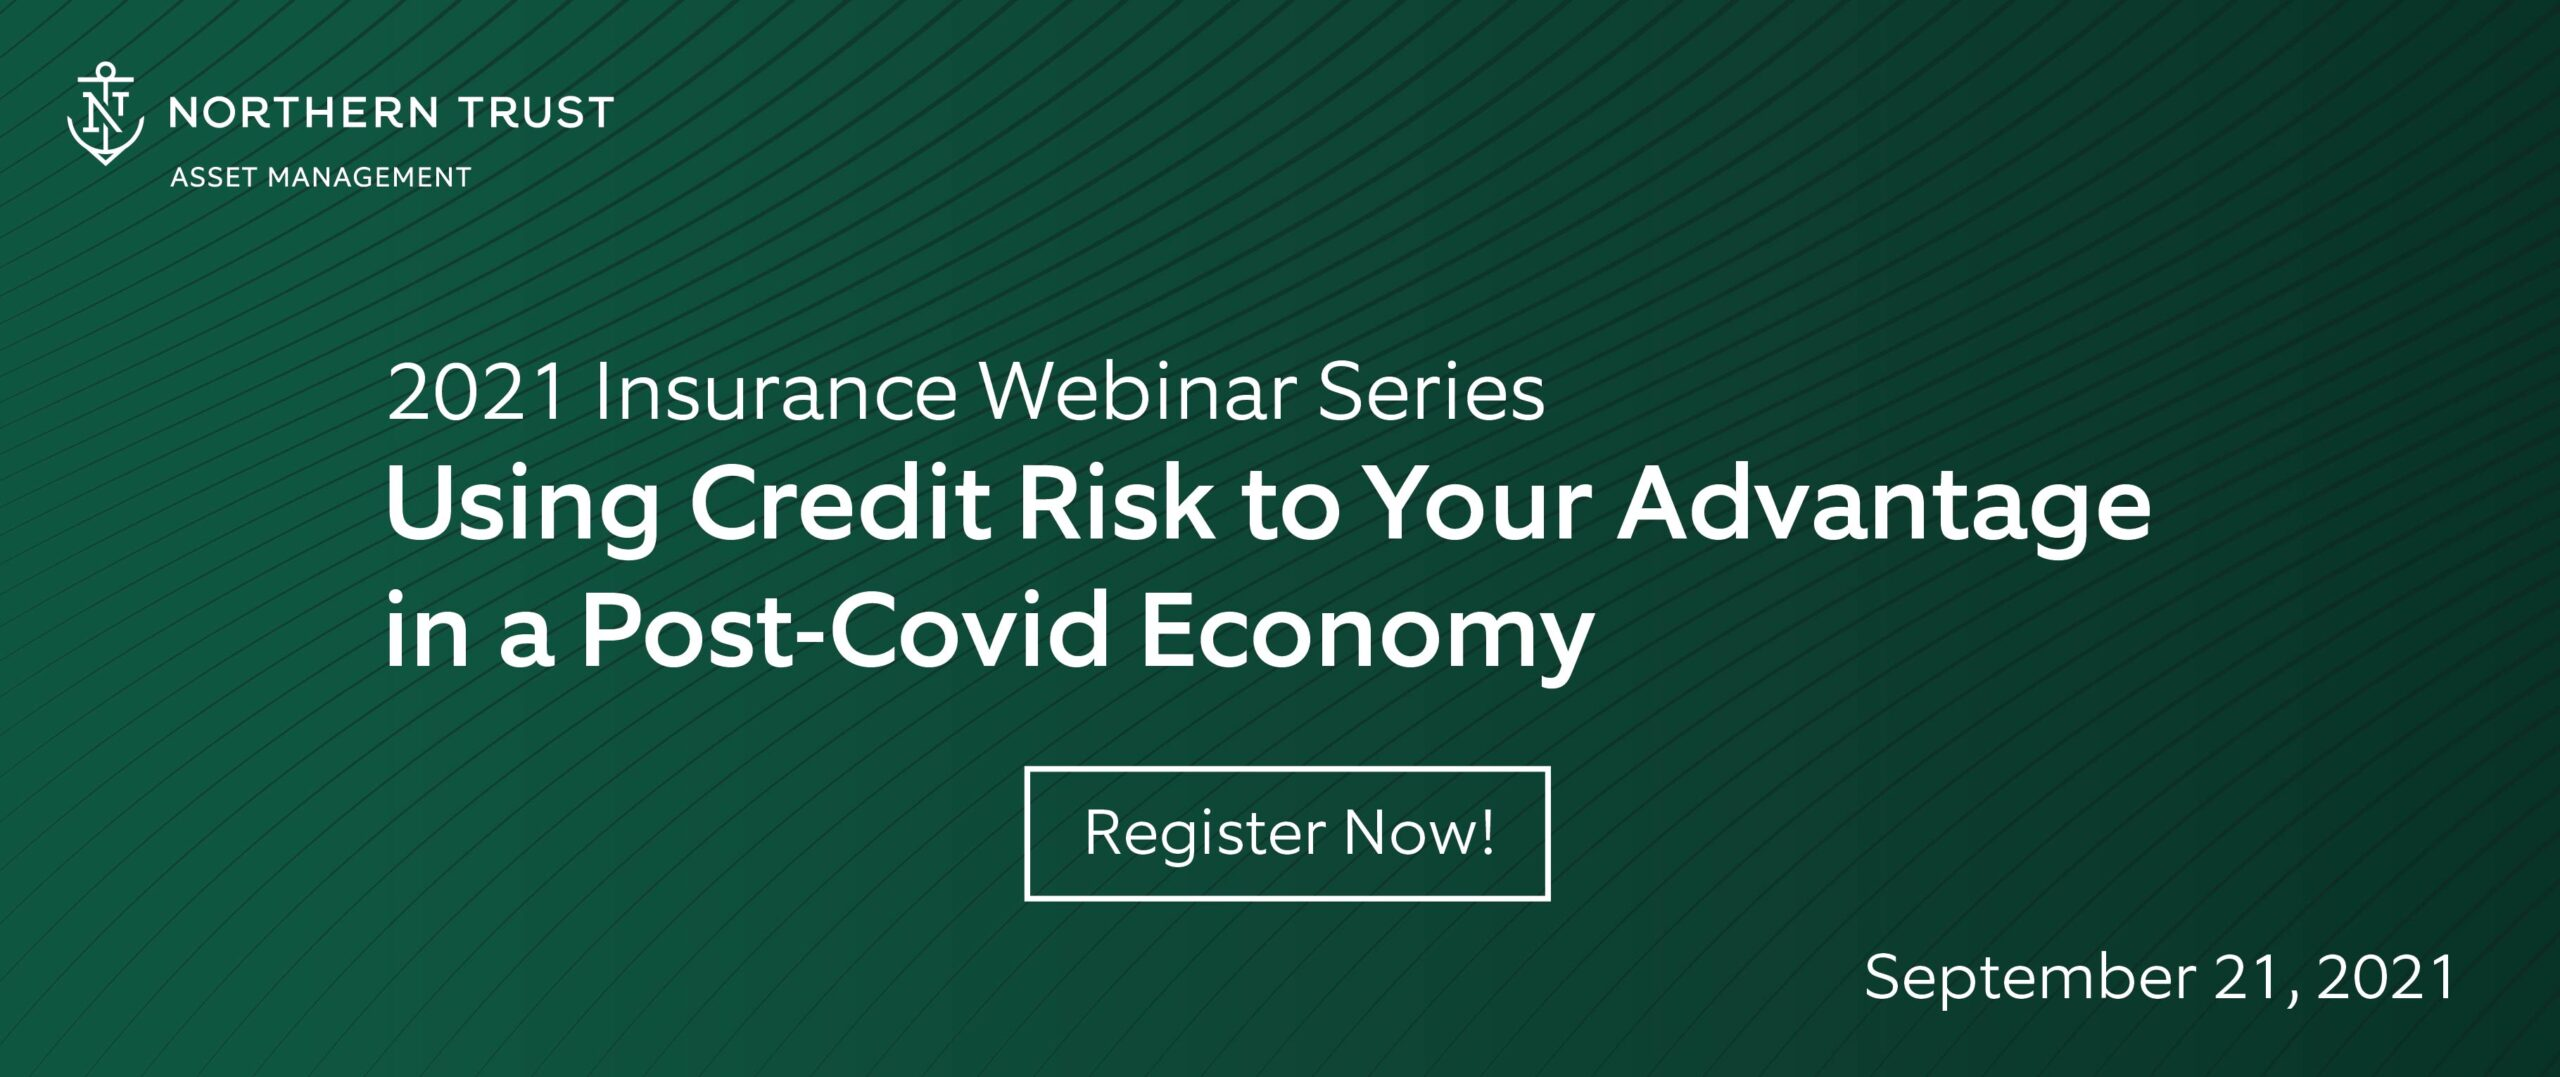 Using Credit Risk to Your Advantage in a Post-COVID Economy banner on dark green background